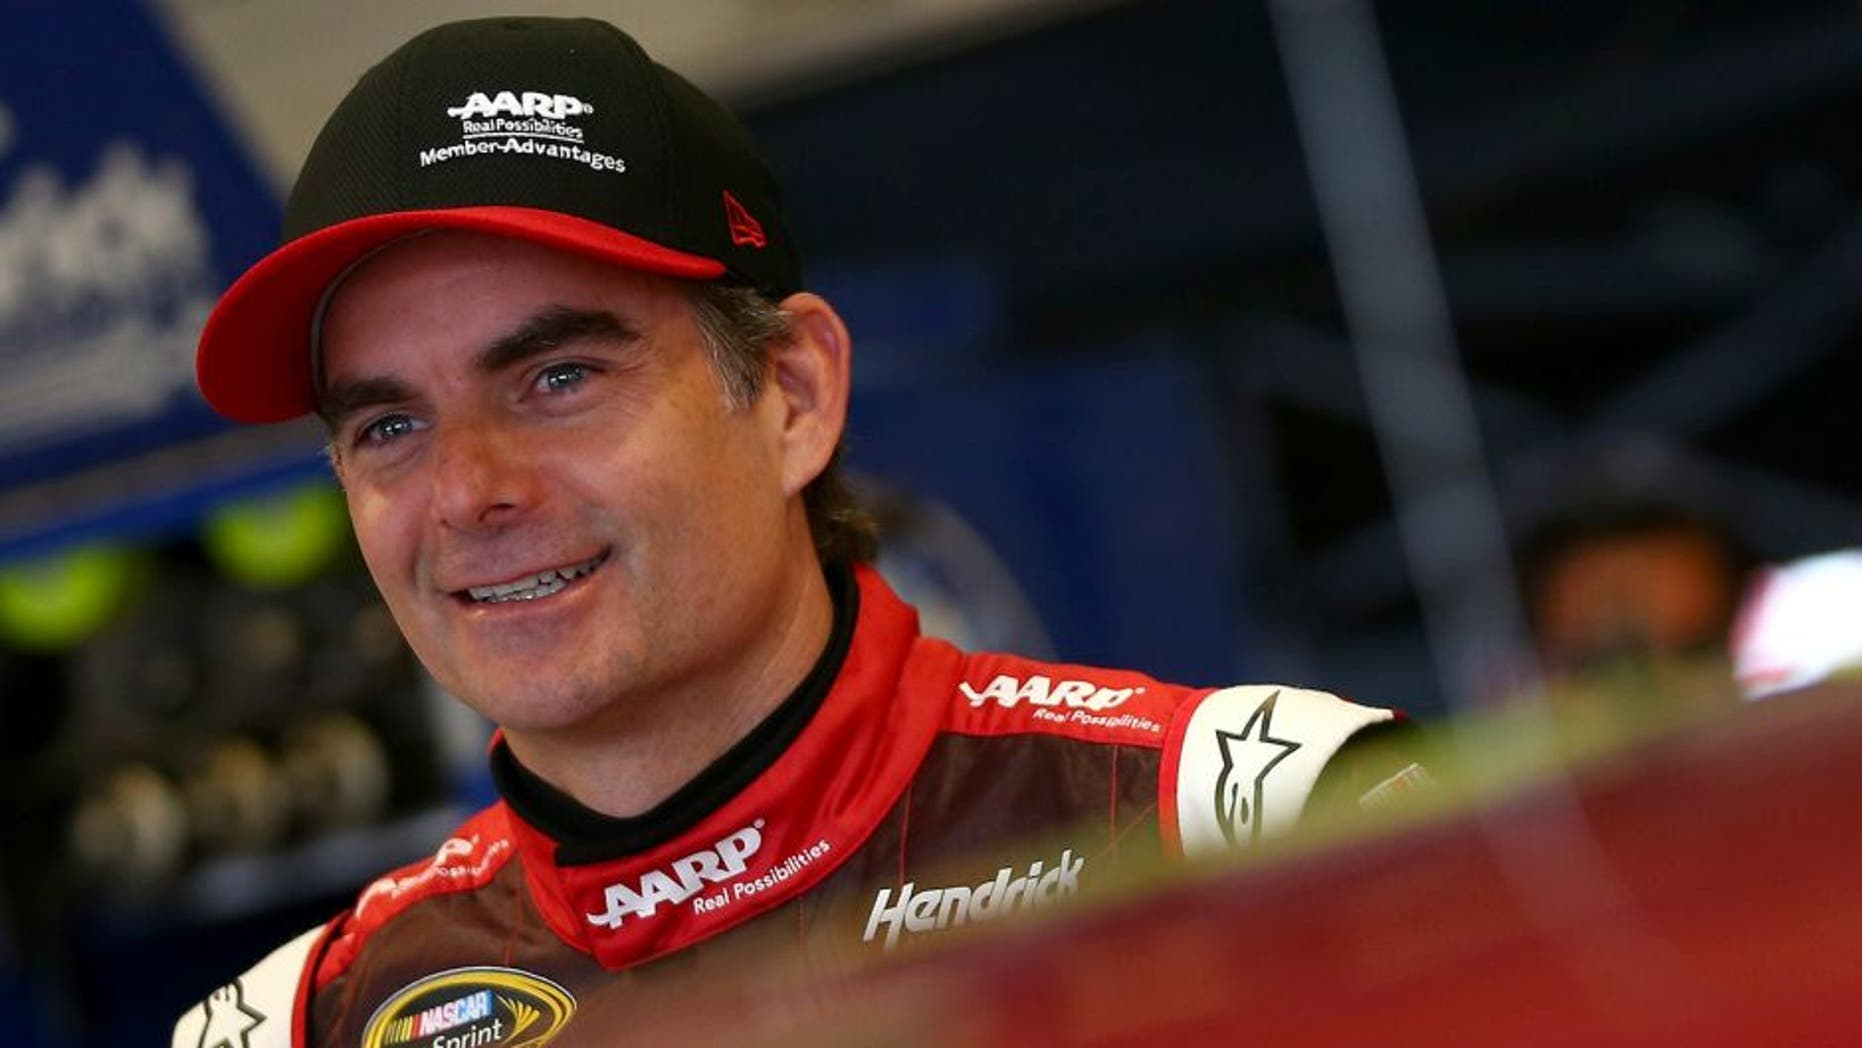 SPARTA, KY - JULY 10: Jeff Gordon, driver of the #24 AARP Member Advantages Chevrolet, looks on in the garage area during practice for the NASCAR Sprint Cup Series Quaker State 400 Presented by Advance Auto Parts at Kentucky Speedway on July 10, 2015 in Sparta, Kentucky. (Photo by Sarah Crabill/Getty Images)